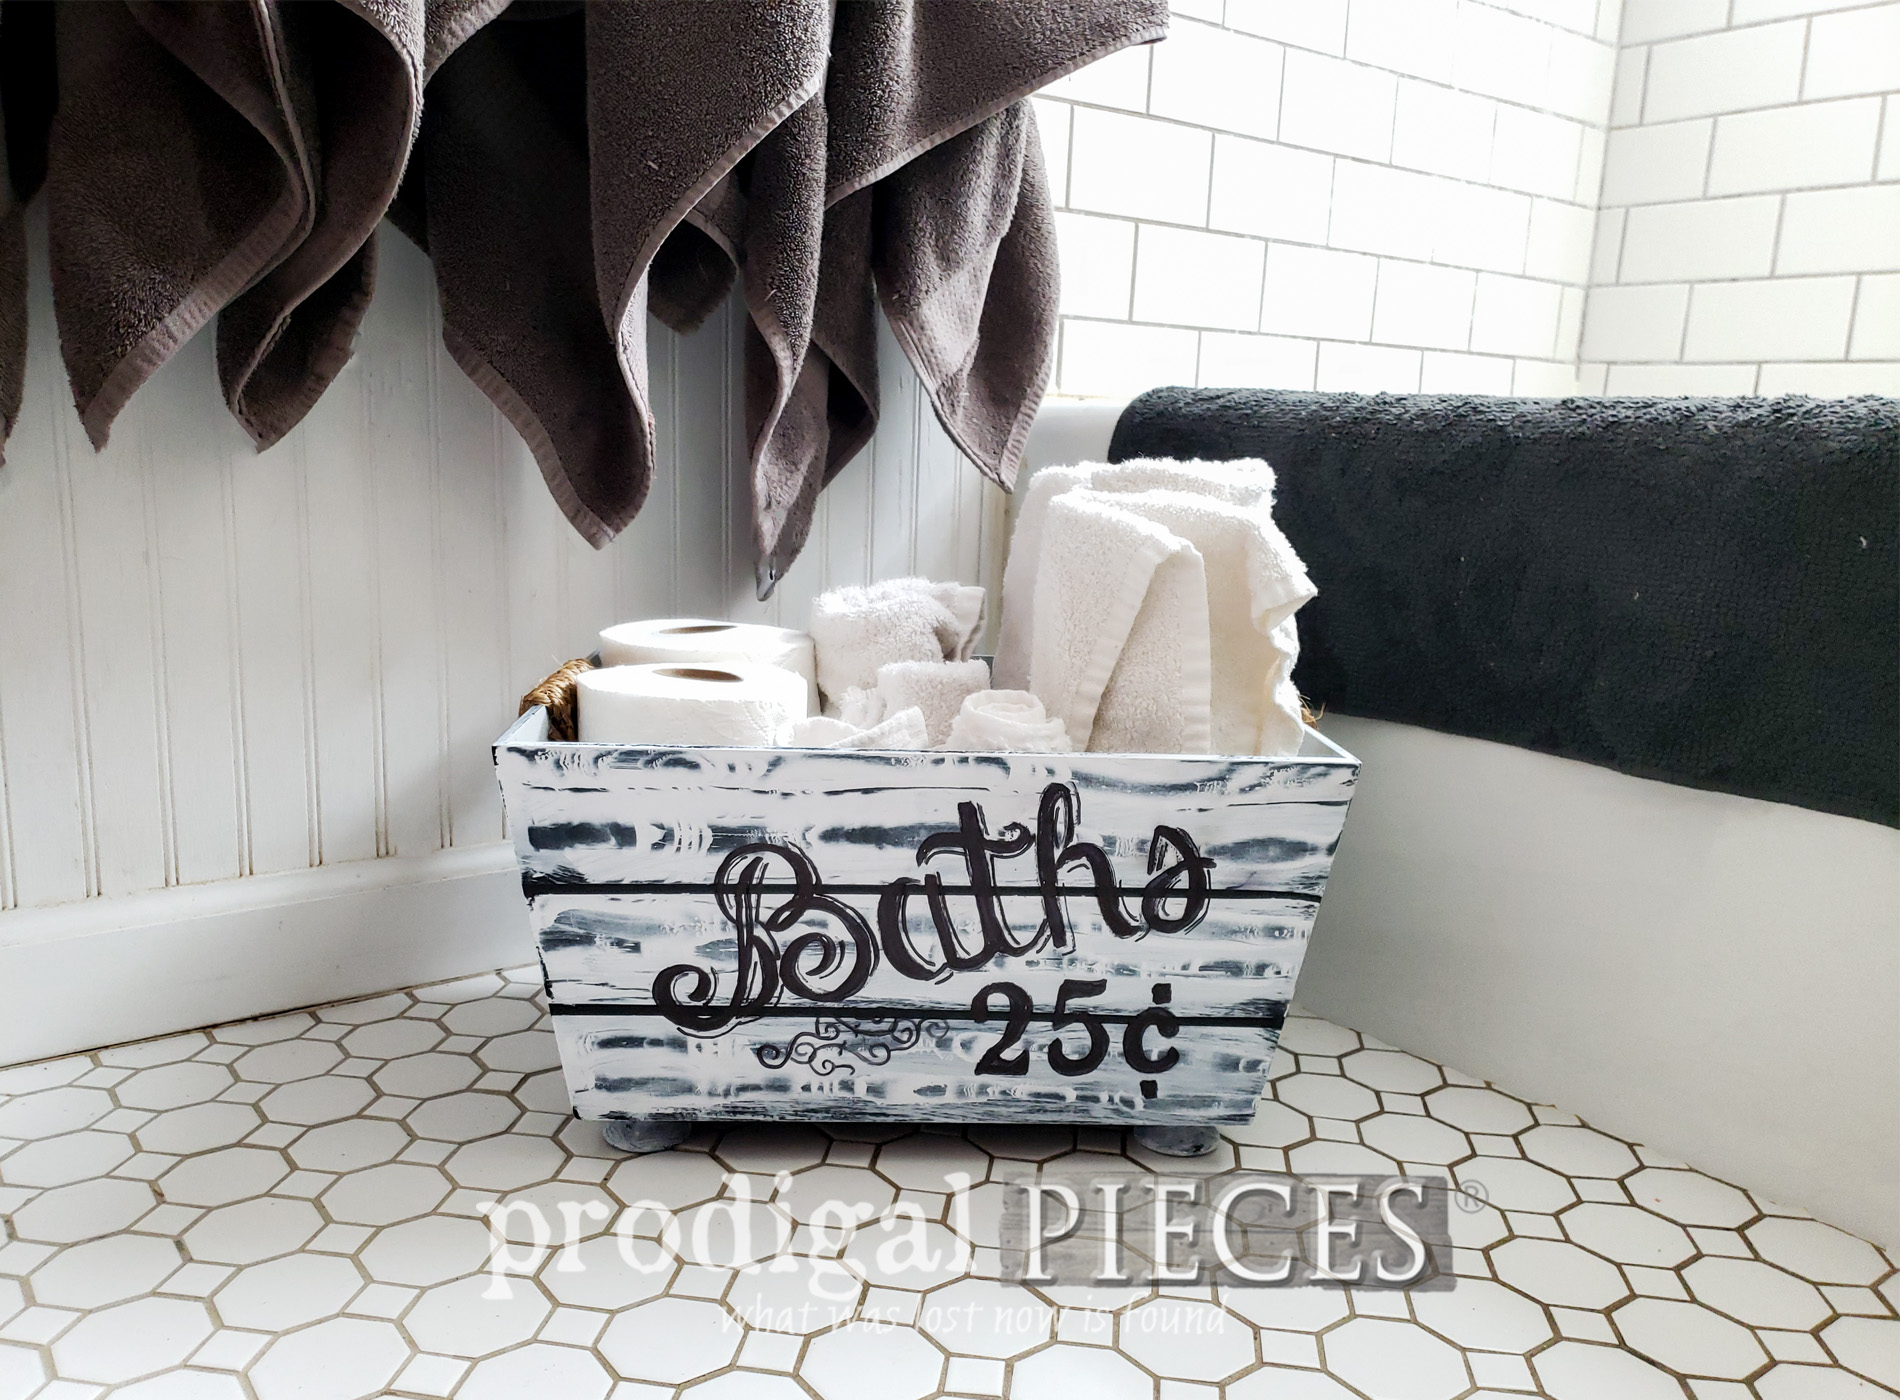 Featured Farmhouse Bathroom Storage from Thrift Store Bin by Larissa of Prodigal Pieces | prodigalpieces.com #prodigalpieces #farmhouse #home #shopping #storage #tutorial #homedecor #homedecorideas #handmade